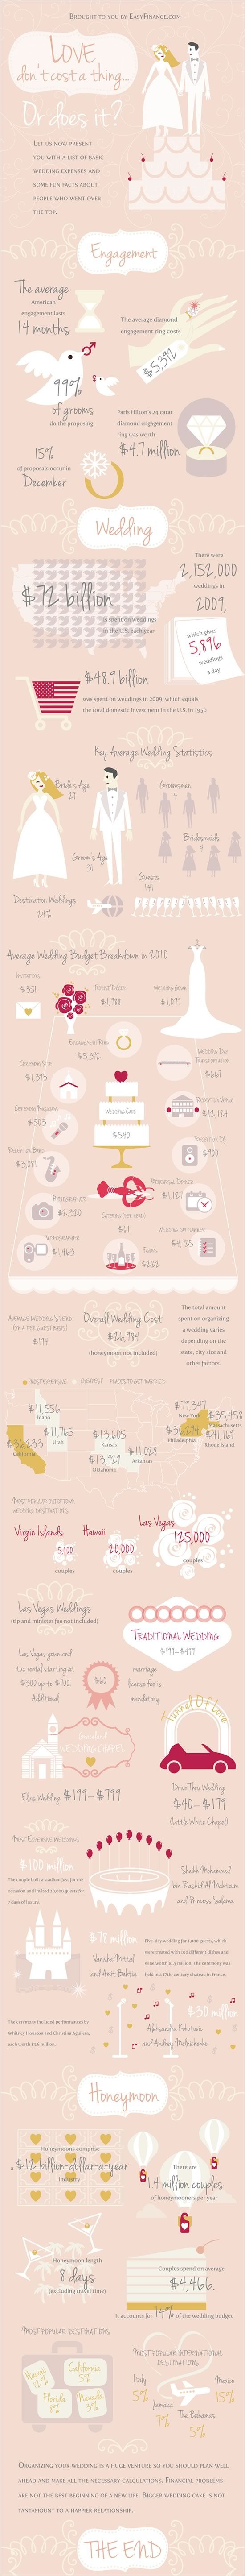 Average Cost Of Getting Married | Wedding expenses, Wedding and Weddings